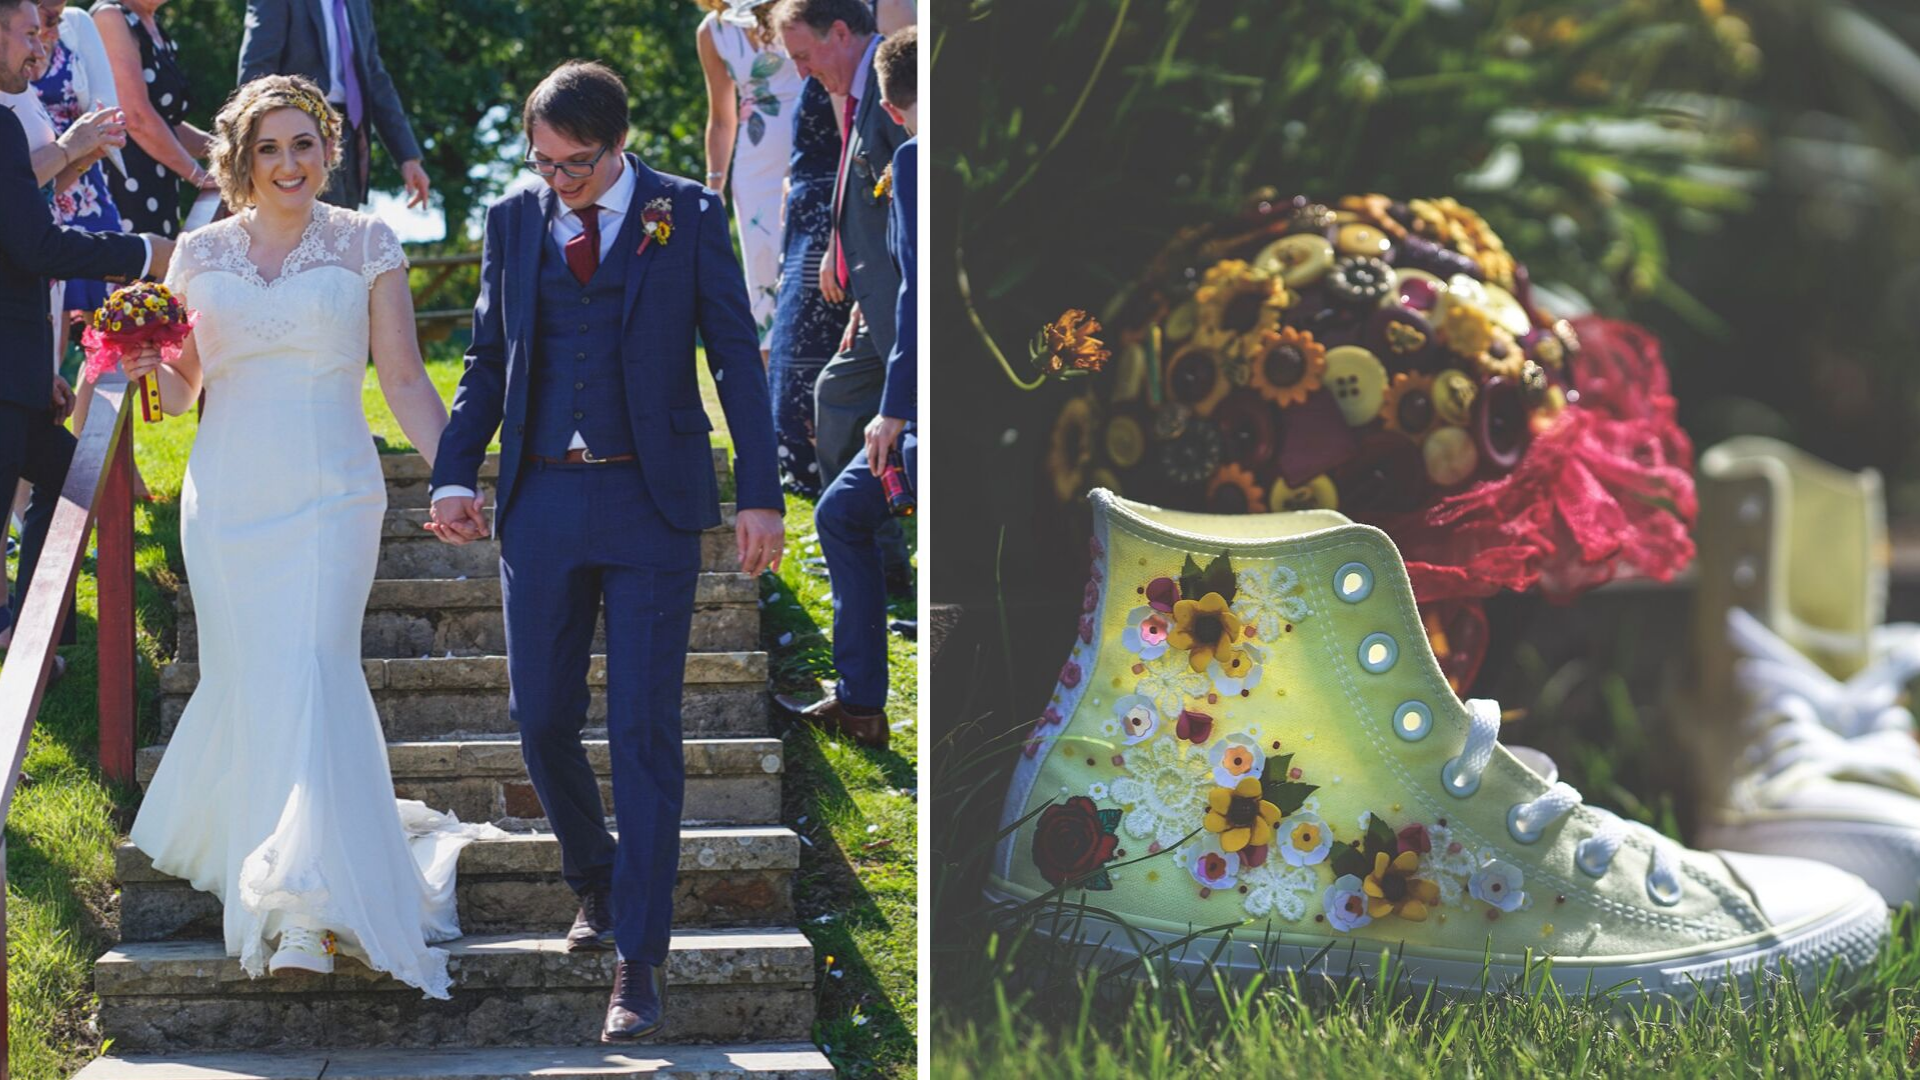 """Rachel - """"Bex made me a pair of beautiful shoes for my wedding day 24/08/2019. She was so helpful over the phone and kept me informed all the time through emails as she was making my converse. Not being very arty myself I gave her a rough idea of what I was after and let her sort of go wild with designing them, I definitely wasn't disappointed! The shoes are so beautiful and I was over the moon when I received them! I'd recommend her to anyone!"""""""